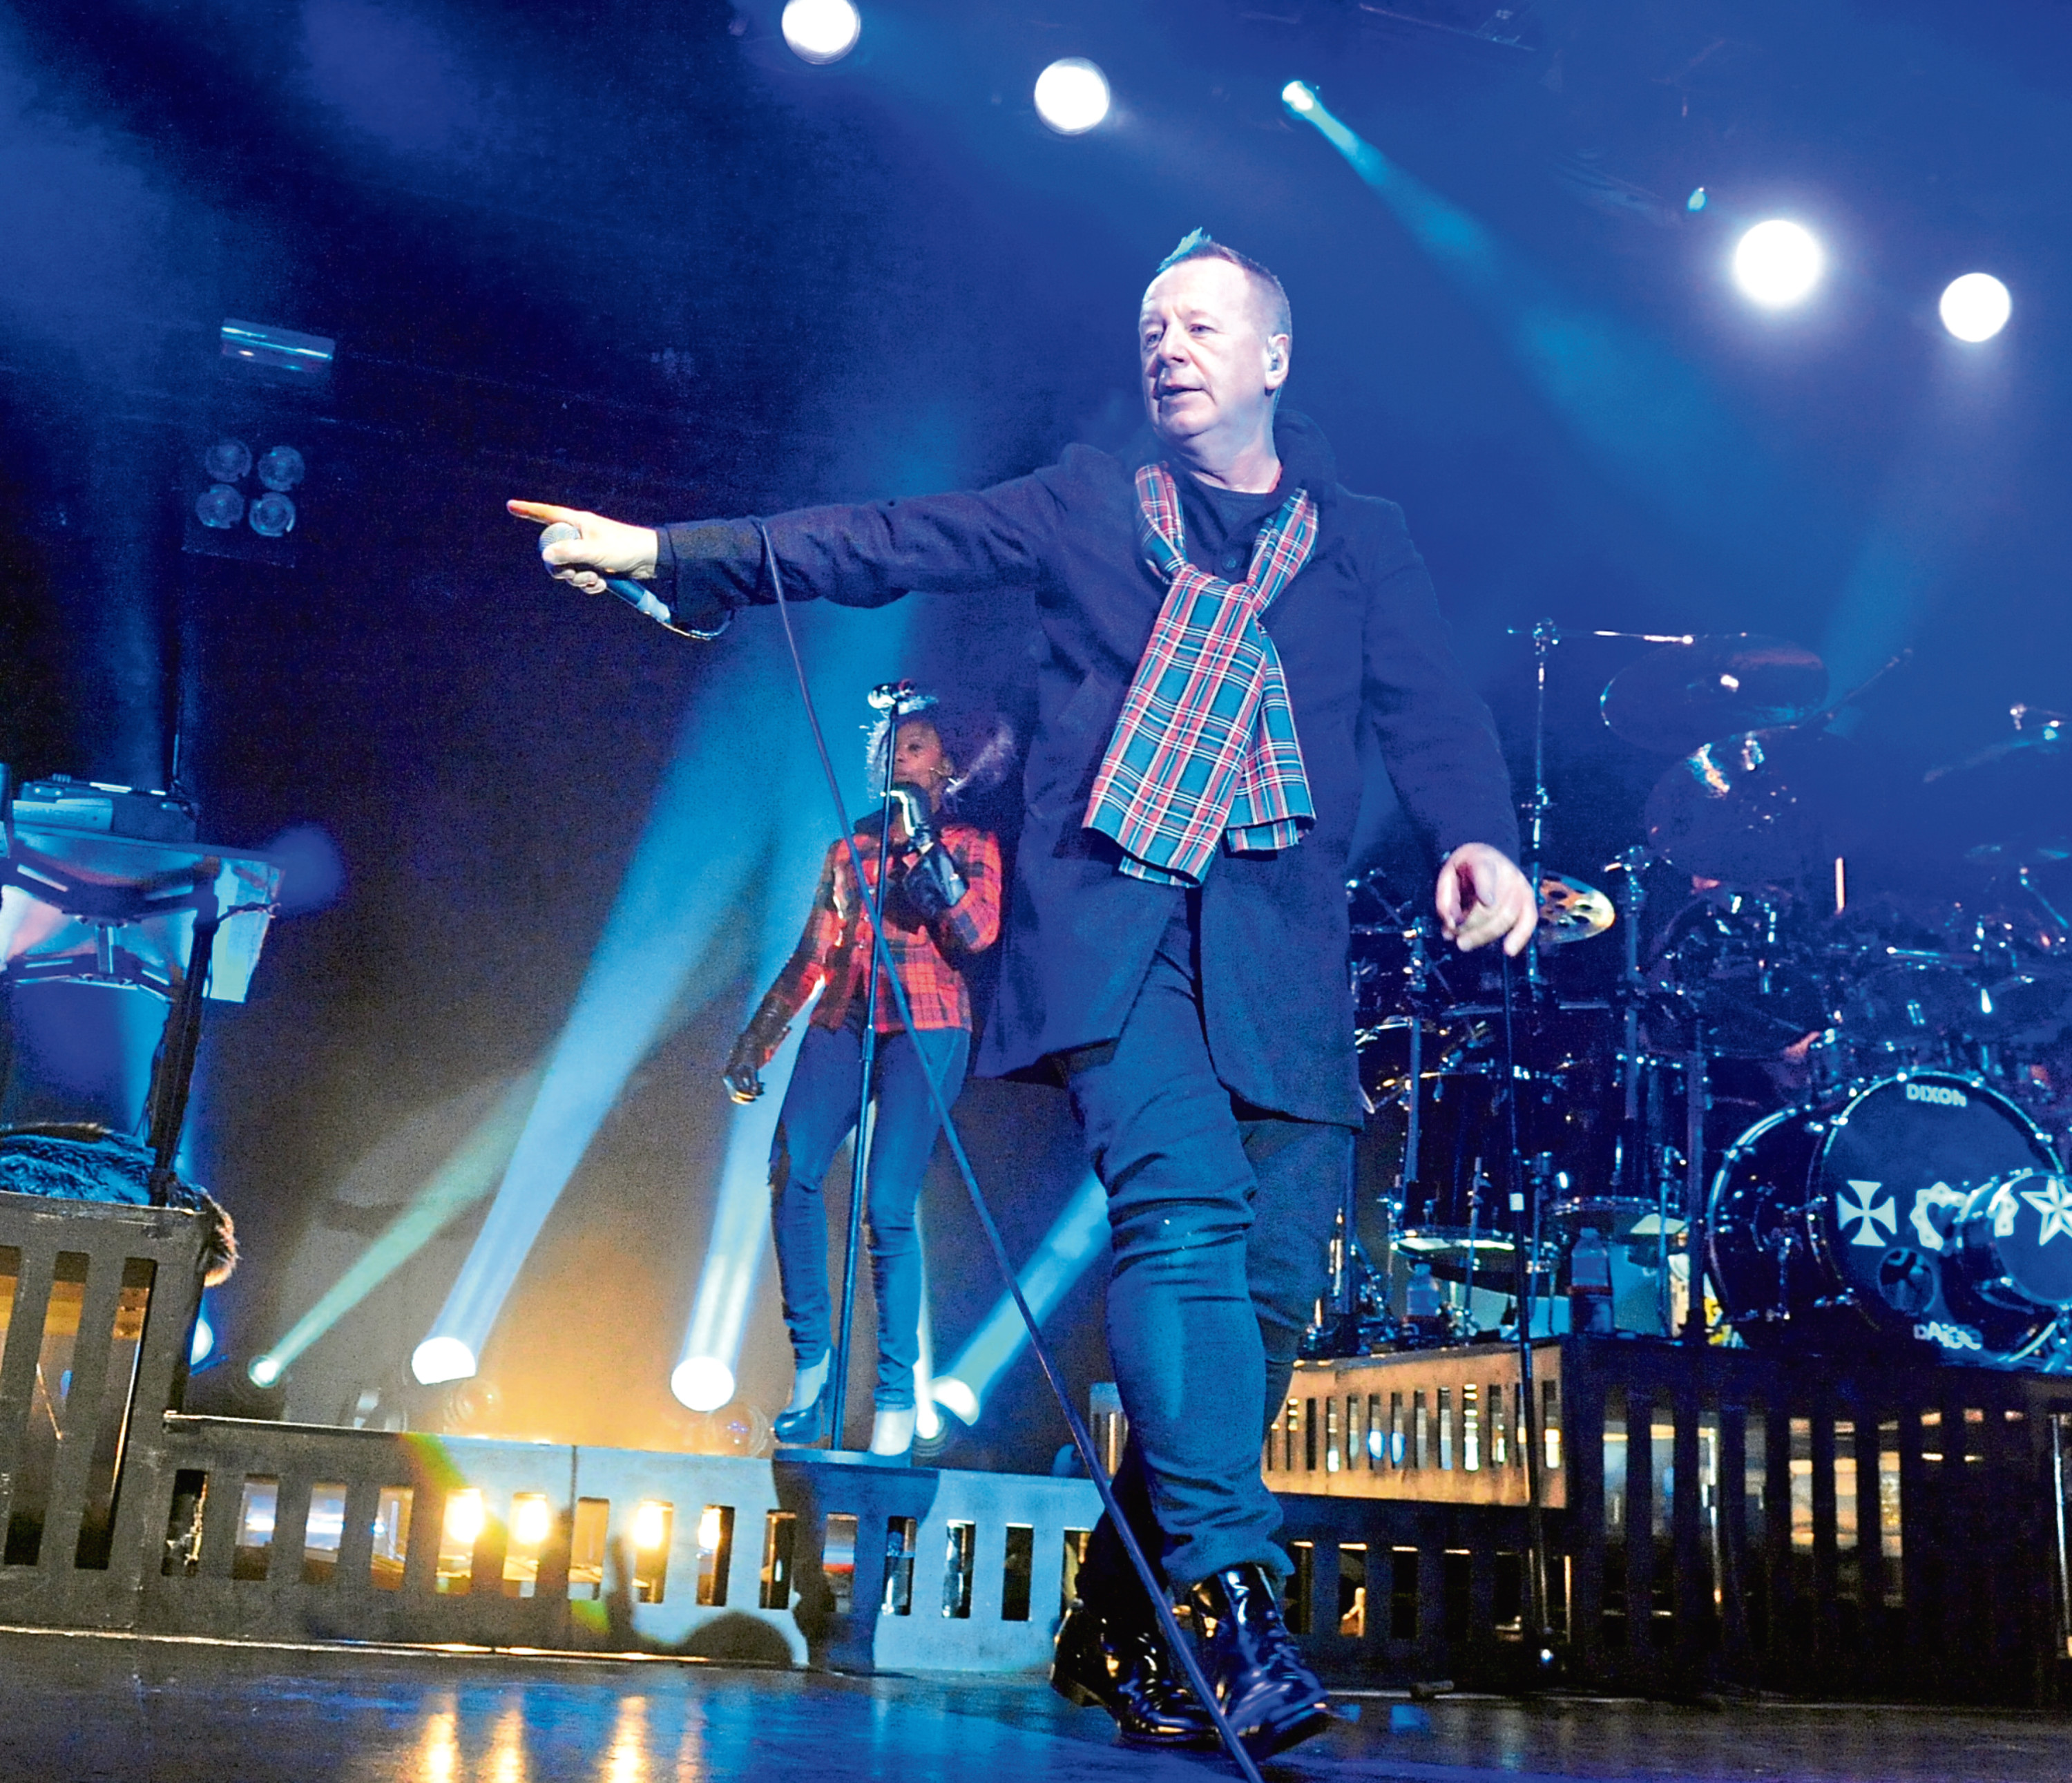 Jim kerr and the Simple Minds concert during the hogmany celebrations, Stonehaven.  Picture by JIM IRVINE      31-12-13    .